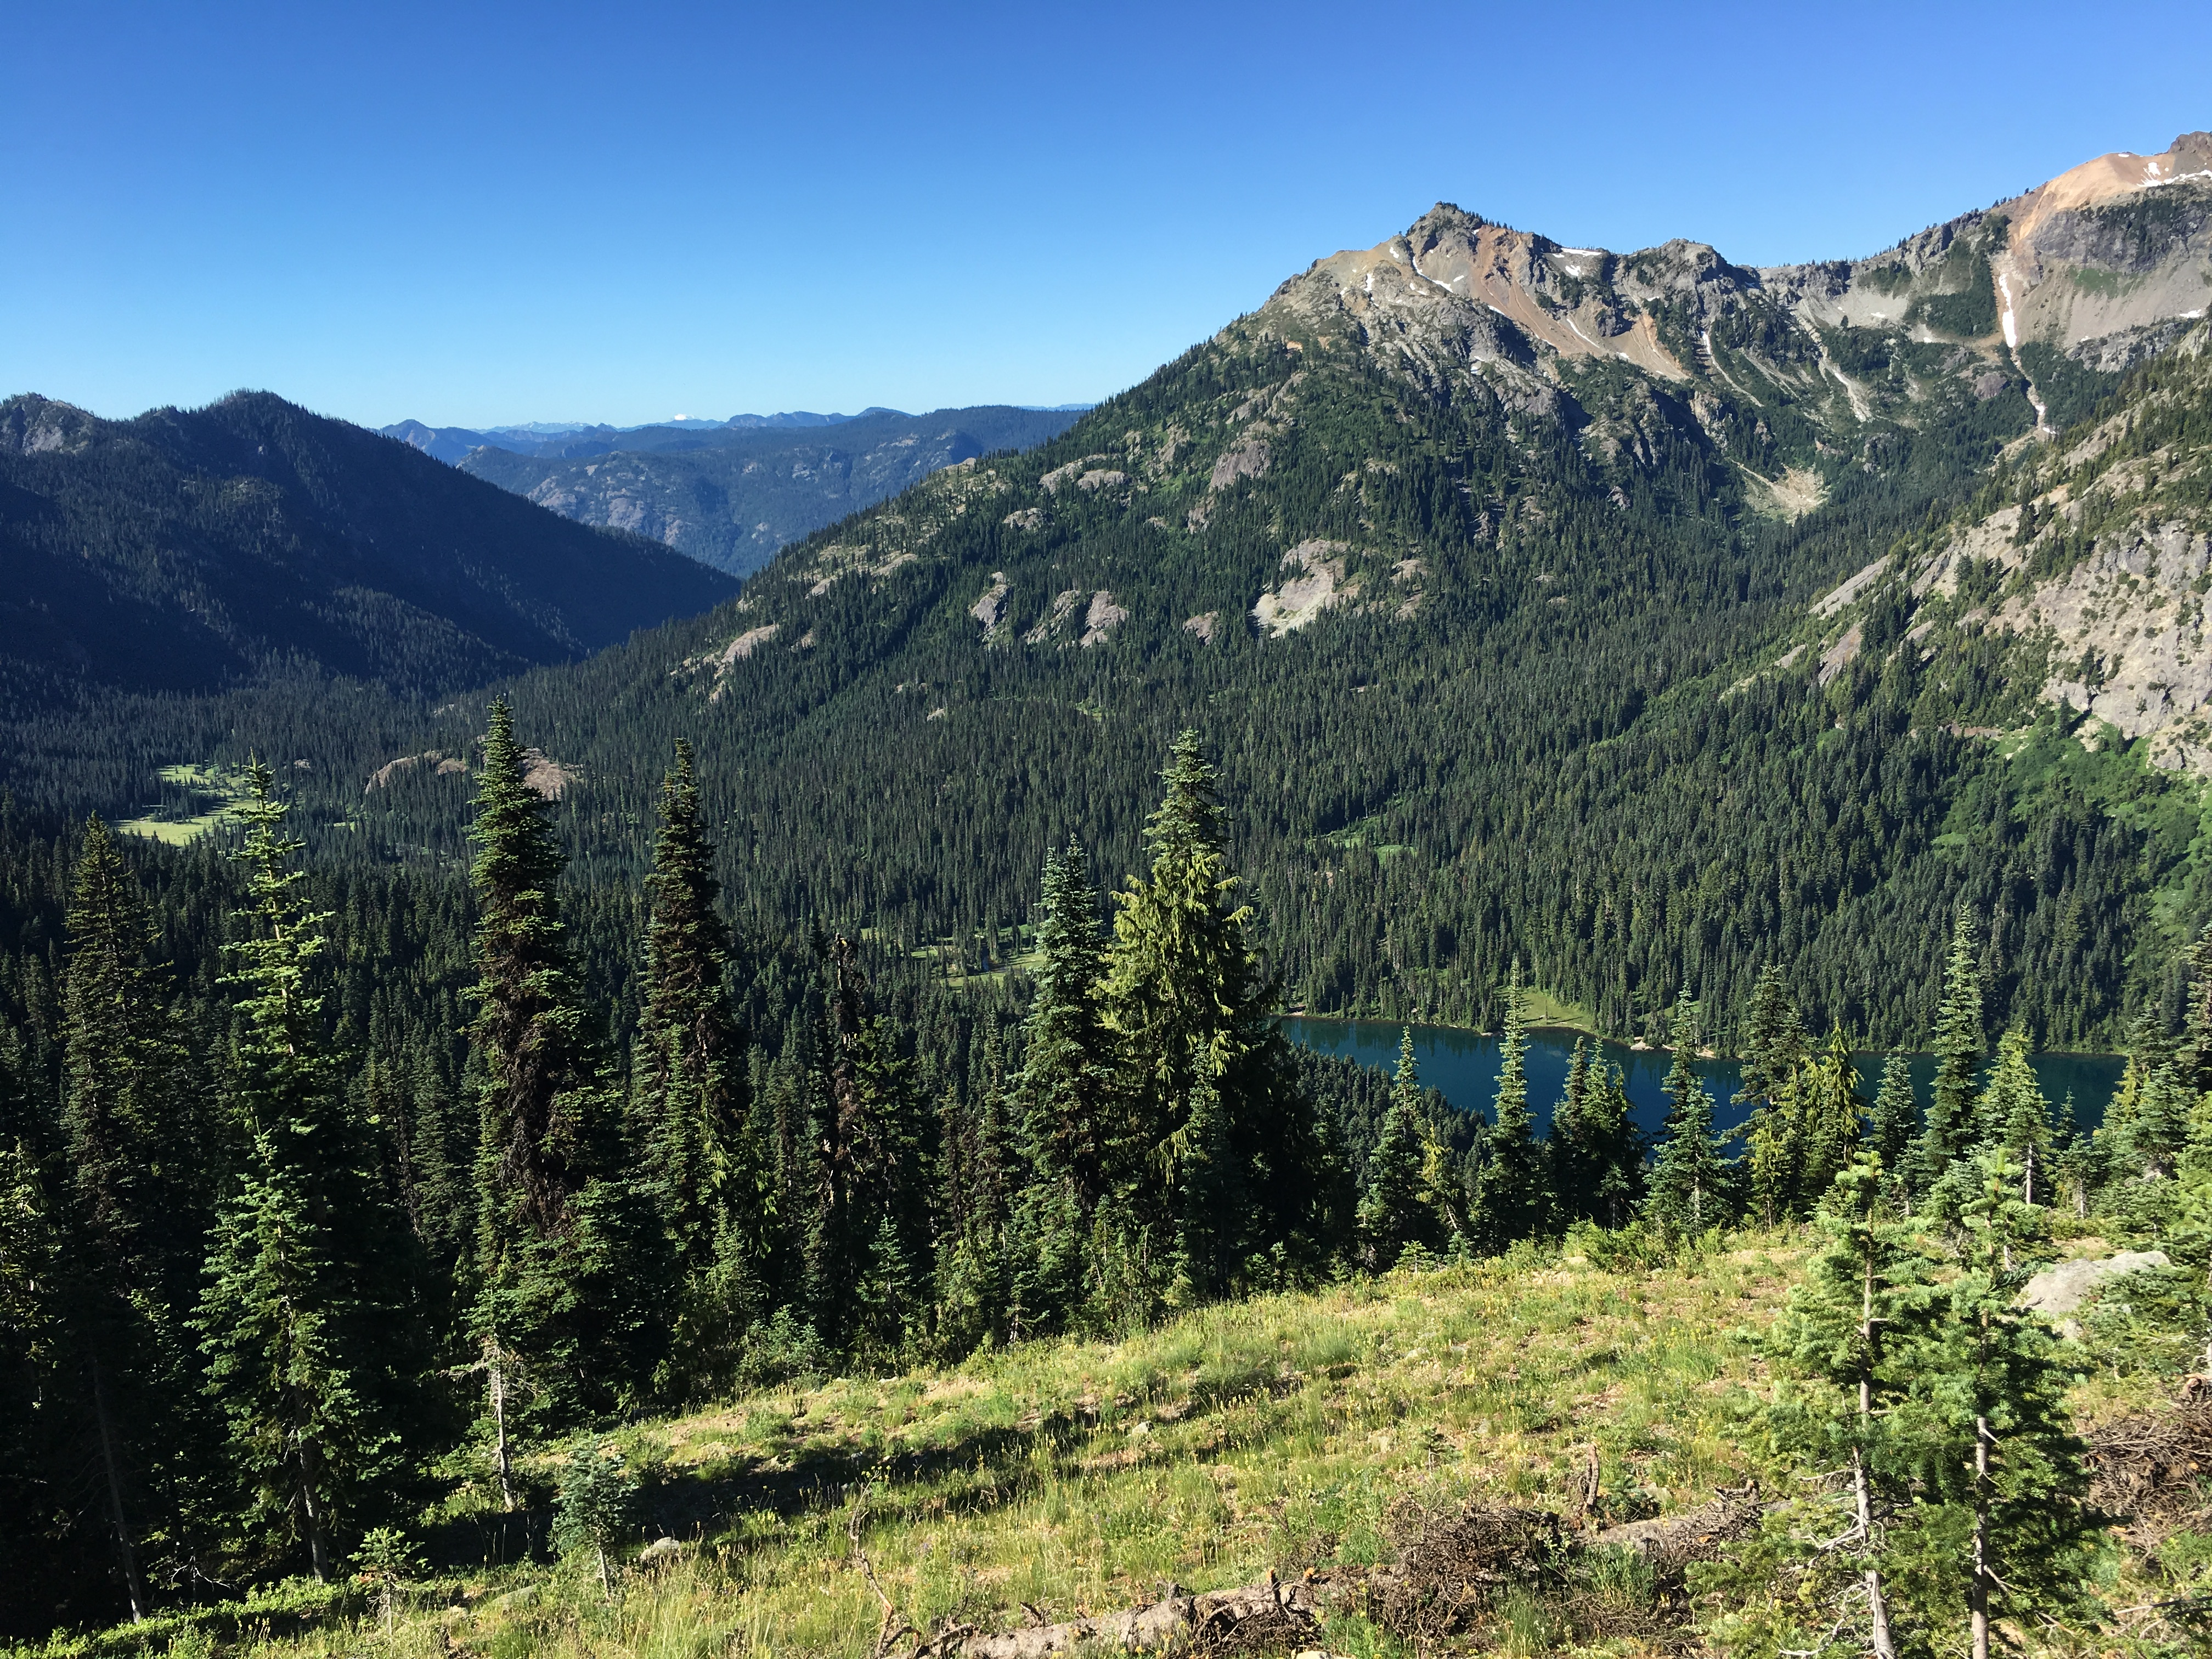 Some lake on the trail during Stevens Pass to Snoqualmie Pass